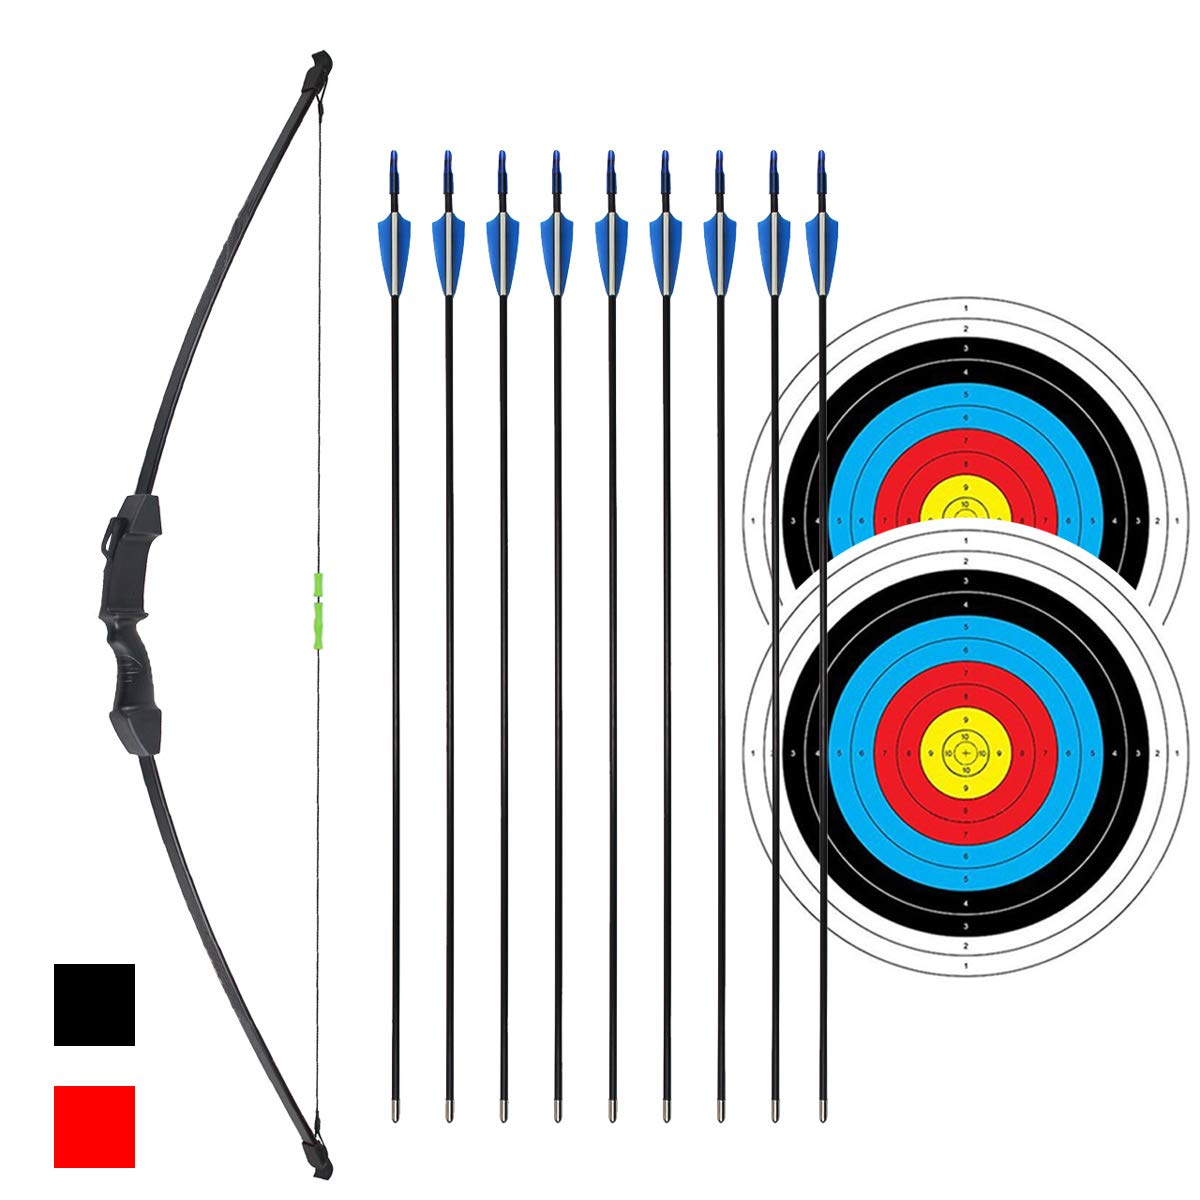 iMay 45'' Bow and Arrows Set with 9 Arrows 2 Target Faces for Teens Outdoor Archery Beginner Gift Recurve Bow Longbow Kit (Black)